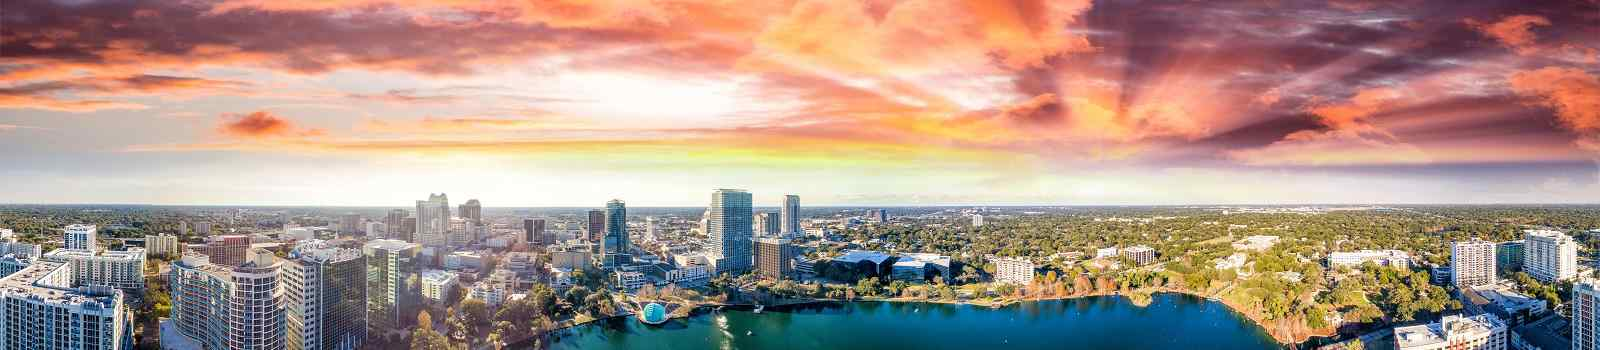 DIX-SWING  Panoramic aerial view of Lake Eola and surrounding buildings  Orlando 736272670